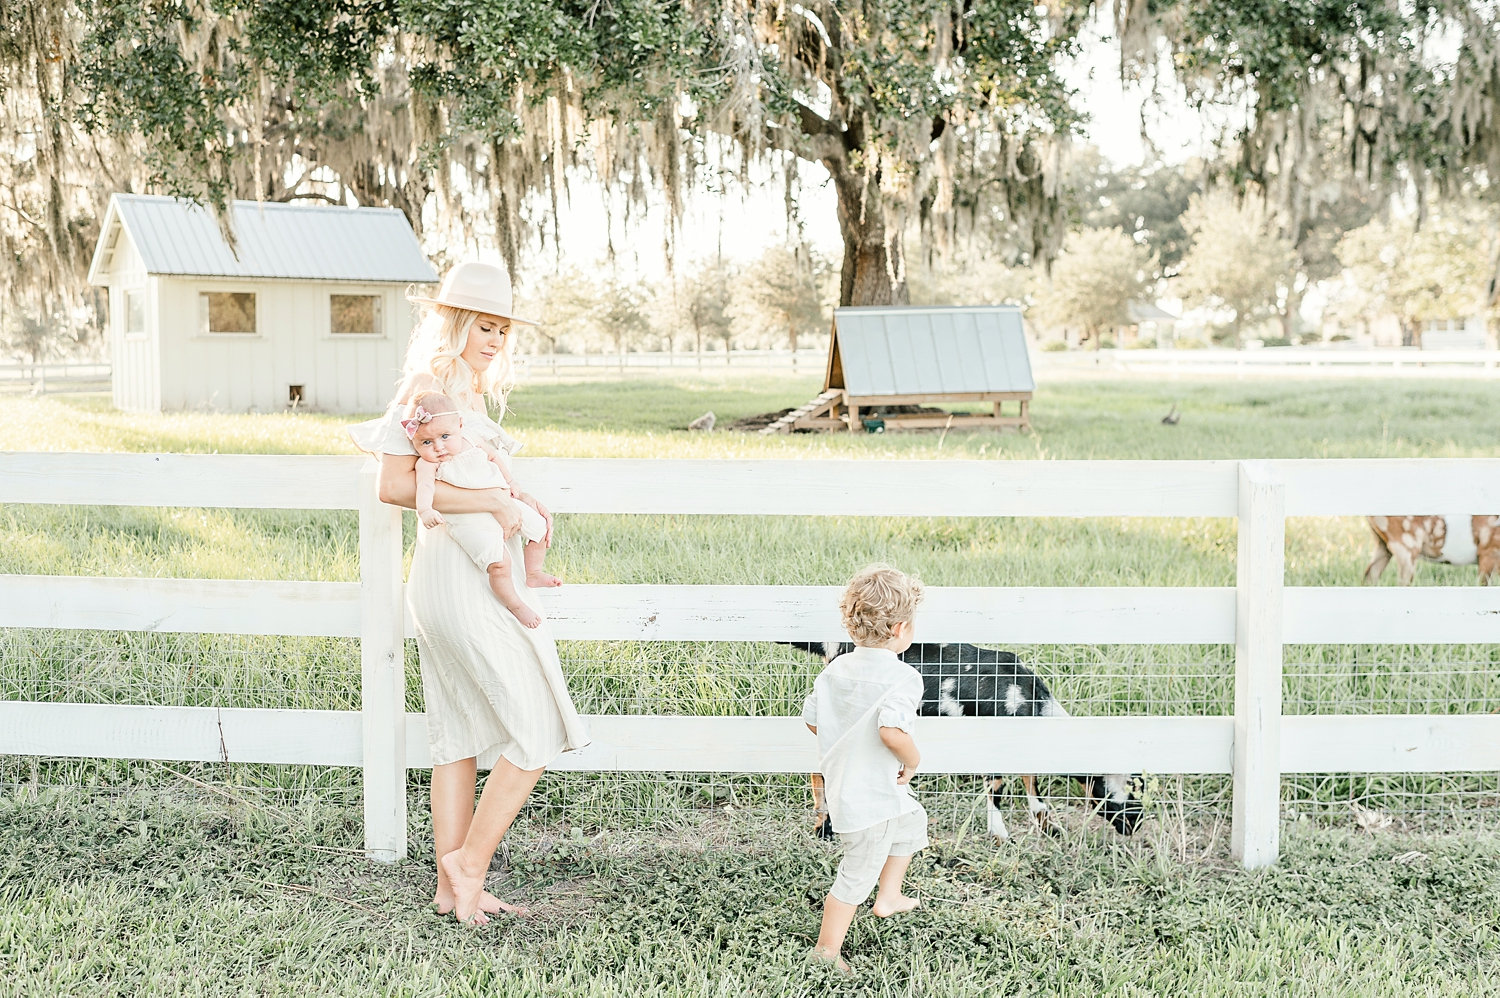 Lochte family, Congaree and Penn, spring family photo session, rustic family photo session, farm